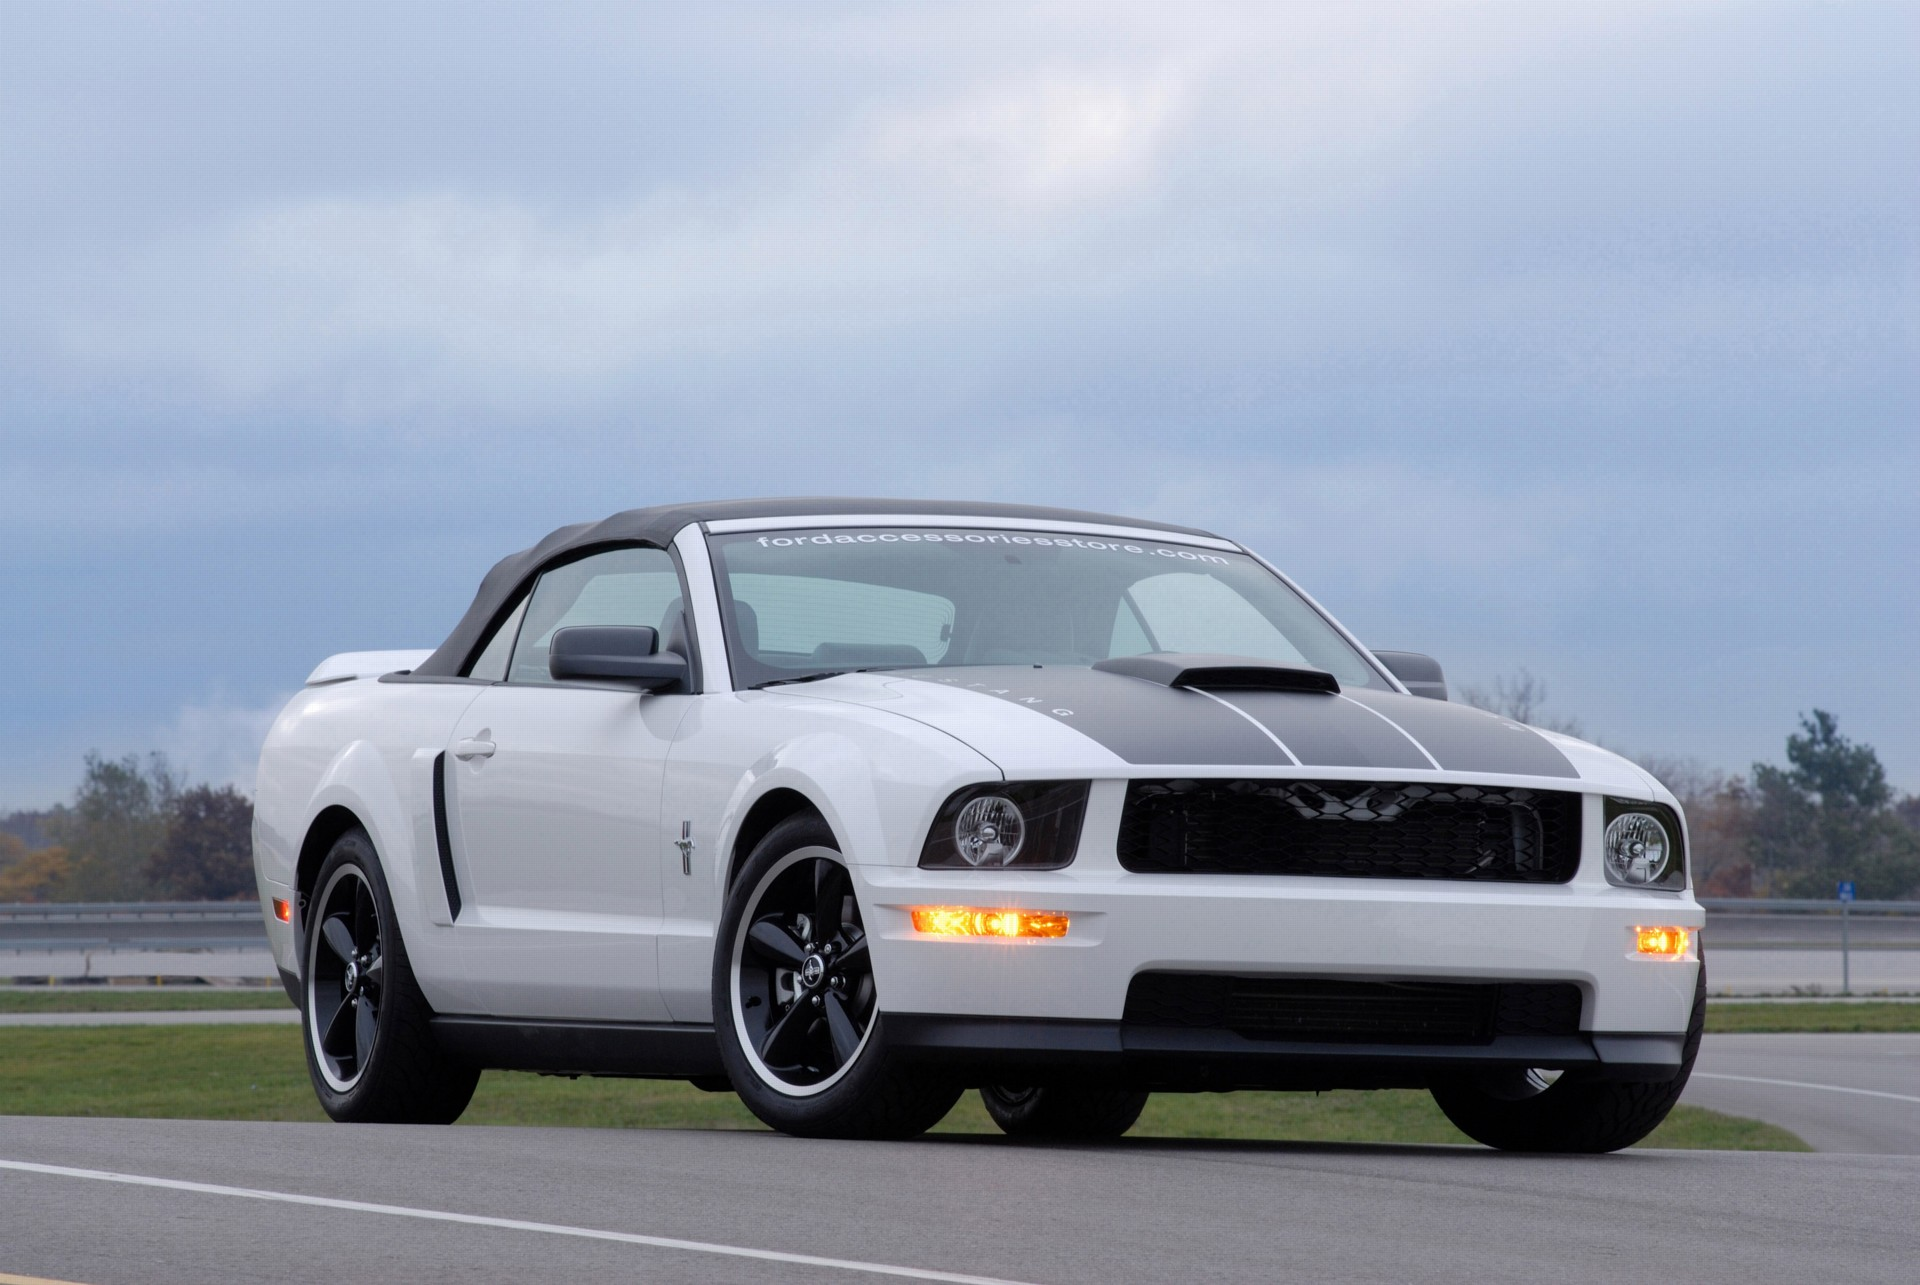 2006 ford project mustang gt pictures history value. Black Bedroom Furniture Sets. Home Design Ideas